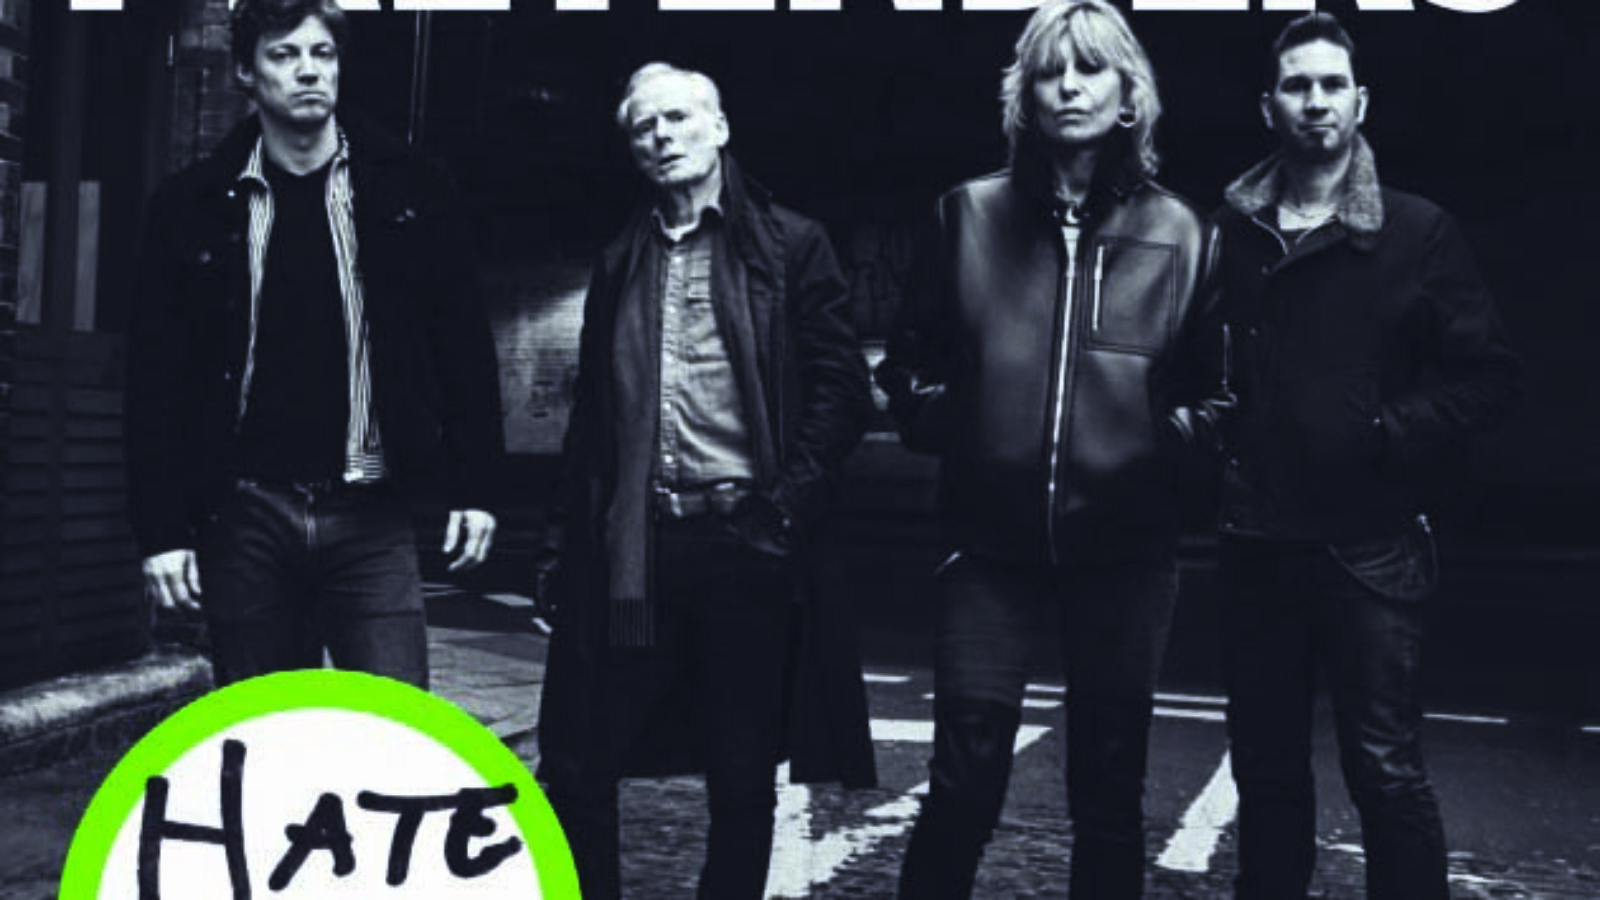 NEUE MUSIK: Pretenders, Thundermother, The Streets